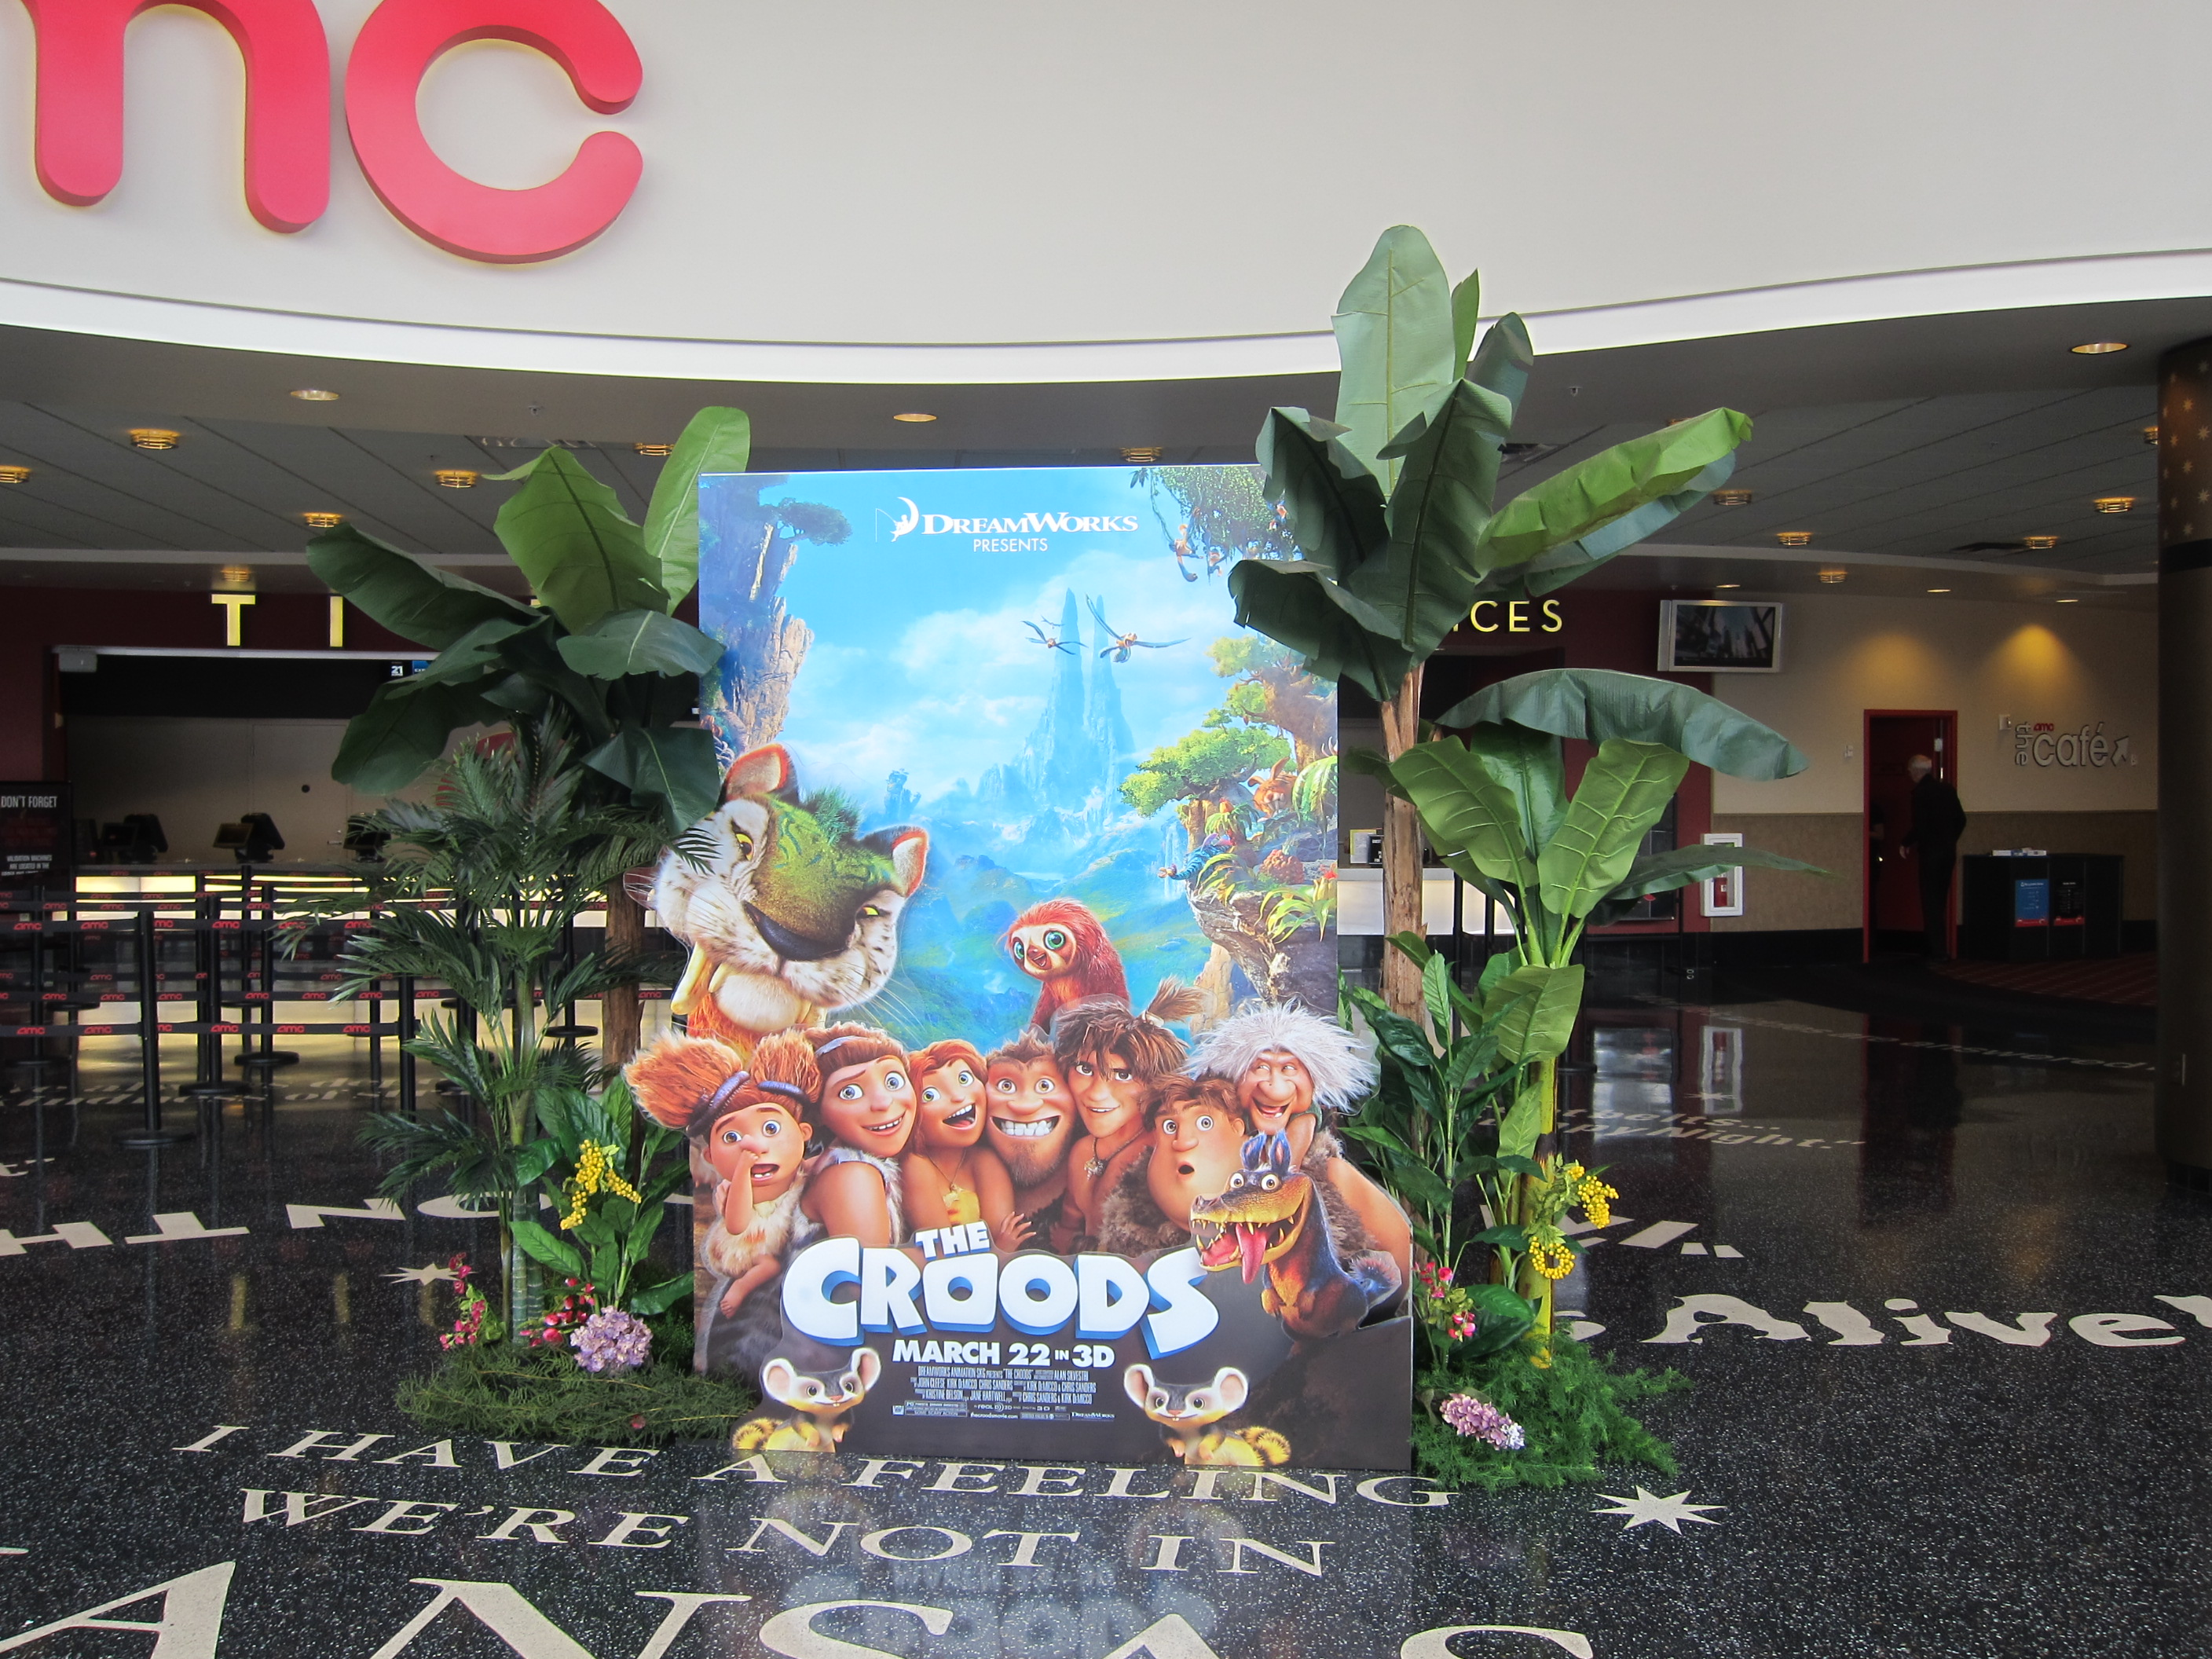 THE CROODS display consists of multiple layers of graphics printed on clear plexi and framed by the T3 system.